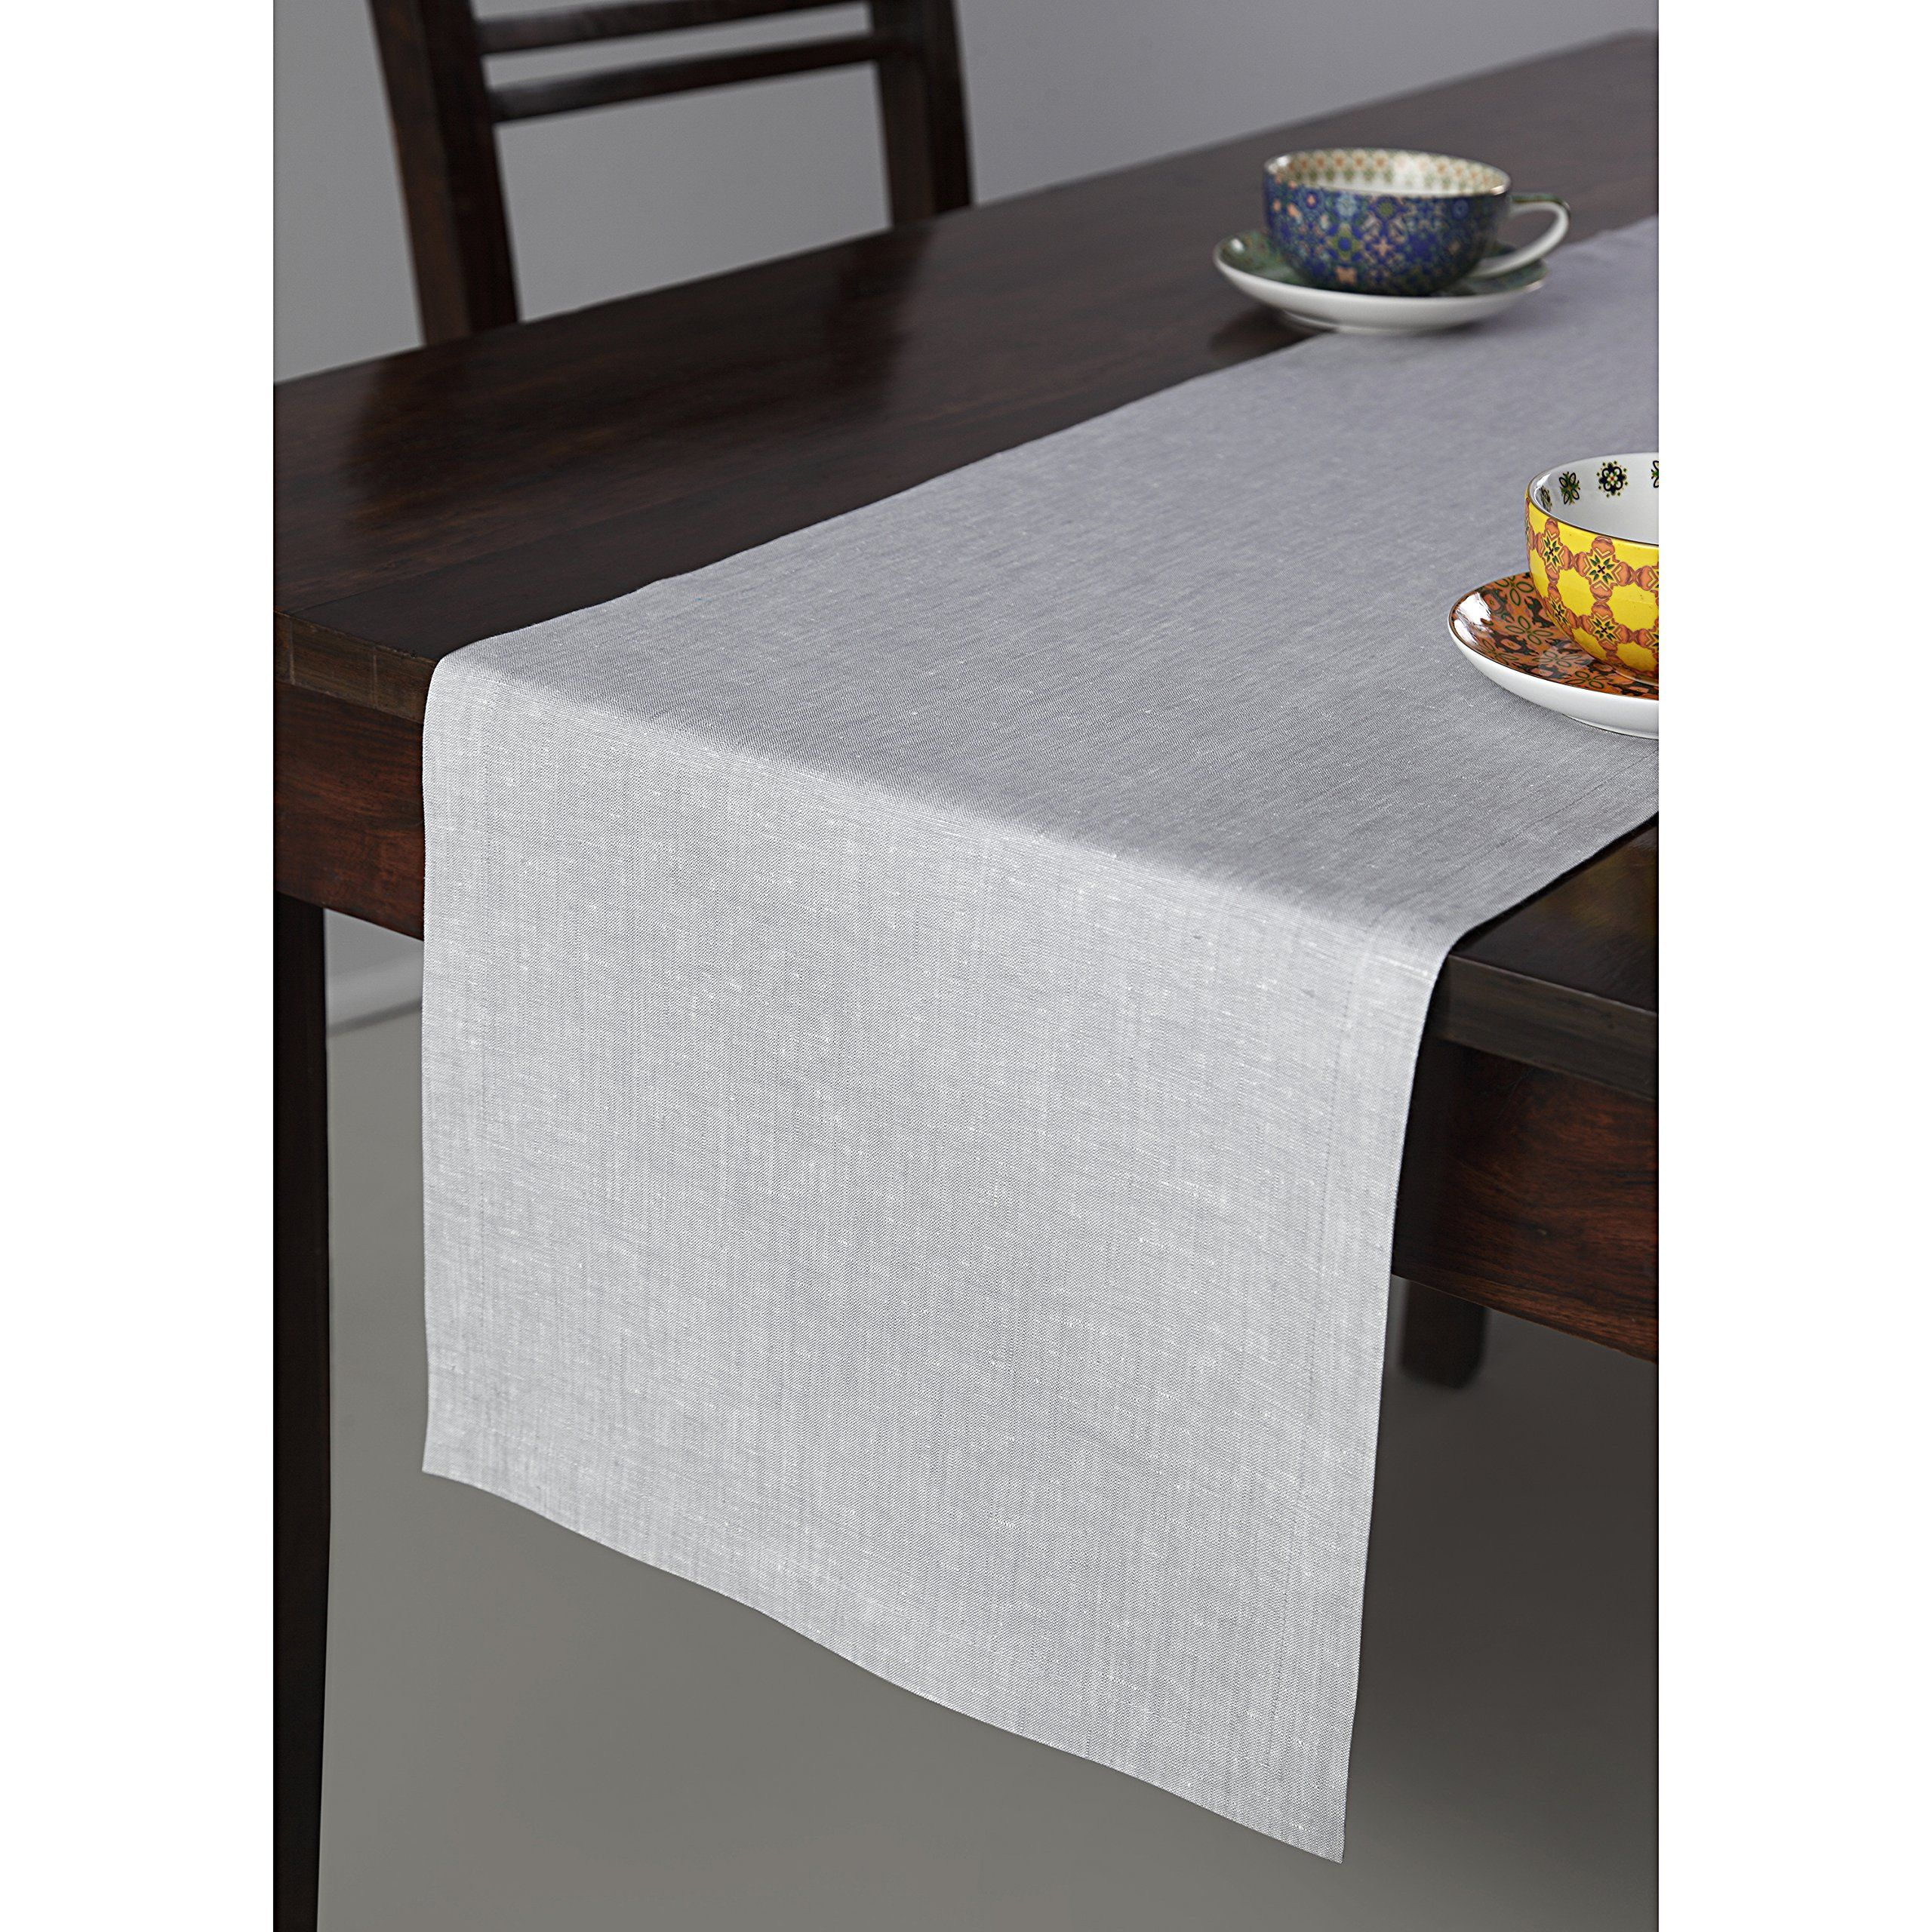 Solino Home 100 Pure Linen Table Runner 14 X 120 Inch Tesoro Runner Natural And Handcrafted From European Flax Light Graphite Linen Table Runner Table Runners Pure Linen